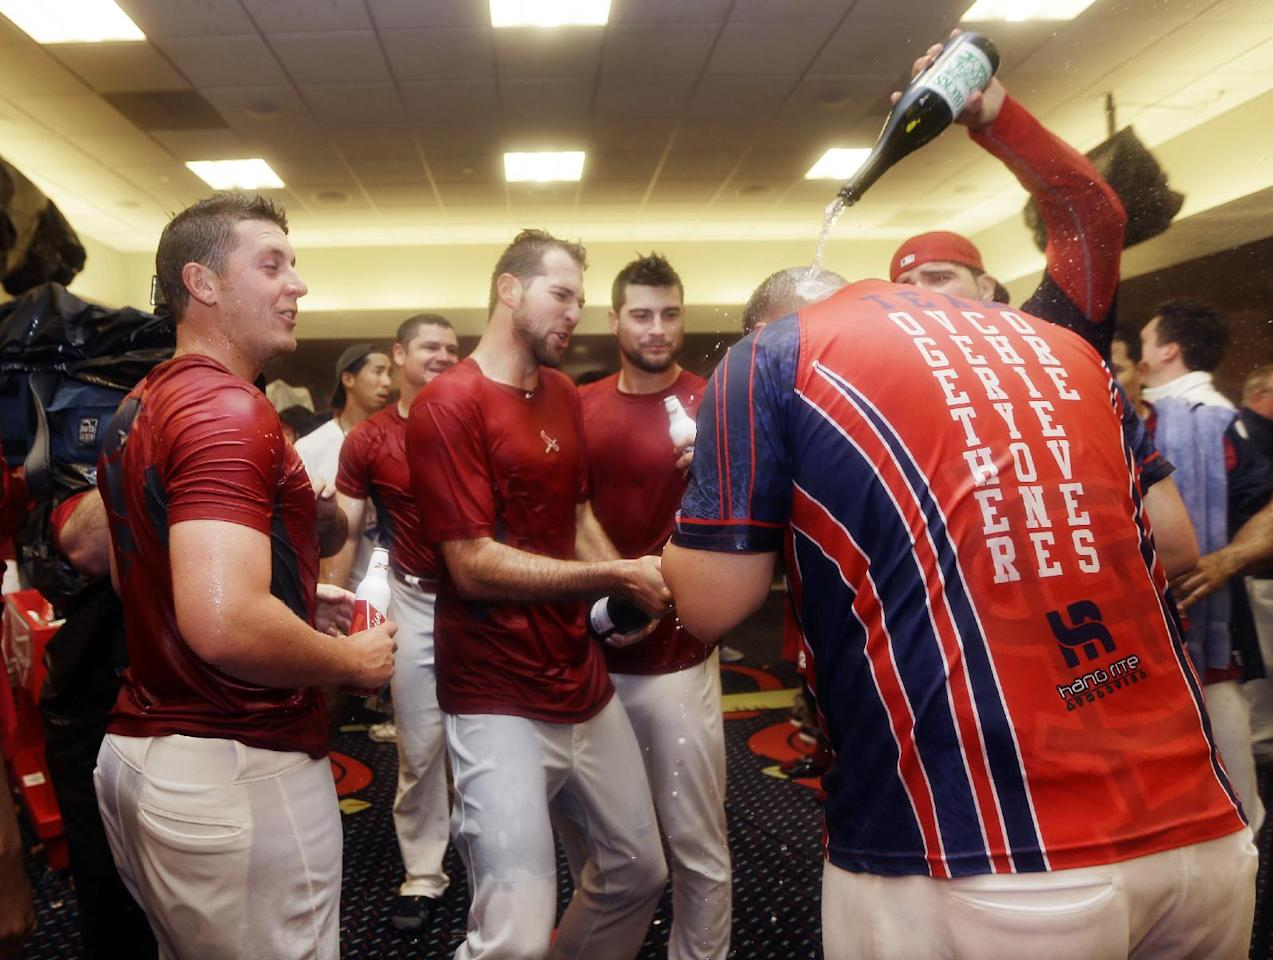 St. Louis Cardinals pour sparkling wine over Matt Adams, foreground, as they celebrate after defeating the Pittsburgh Pirates 6-1 in Game 5 of a National League baseball division series, Wednesday, Oct. 9, 2013, in St. Louis. The Cardinals advanced to the NL championship series against the Los Angeles Dodgers. (AP Photo/Jeff Roberson)